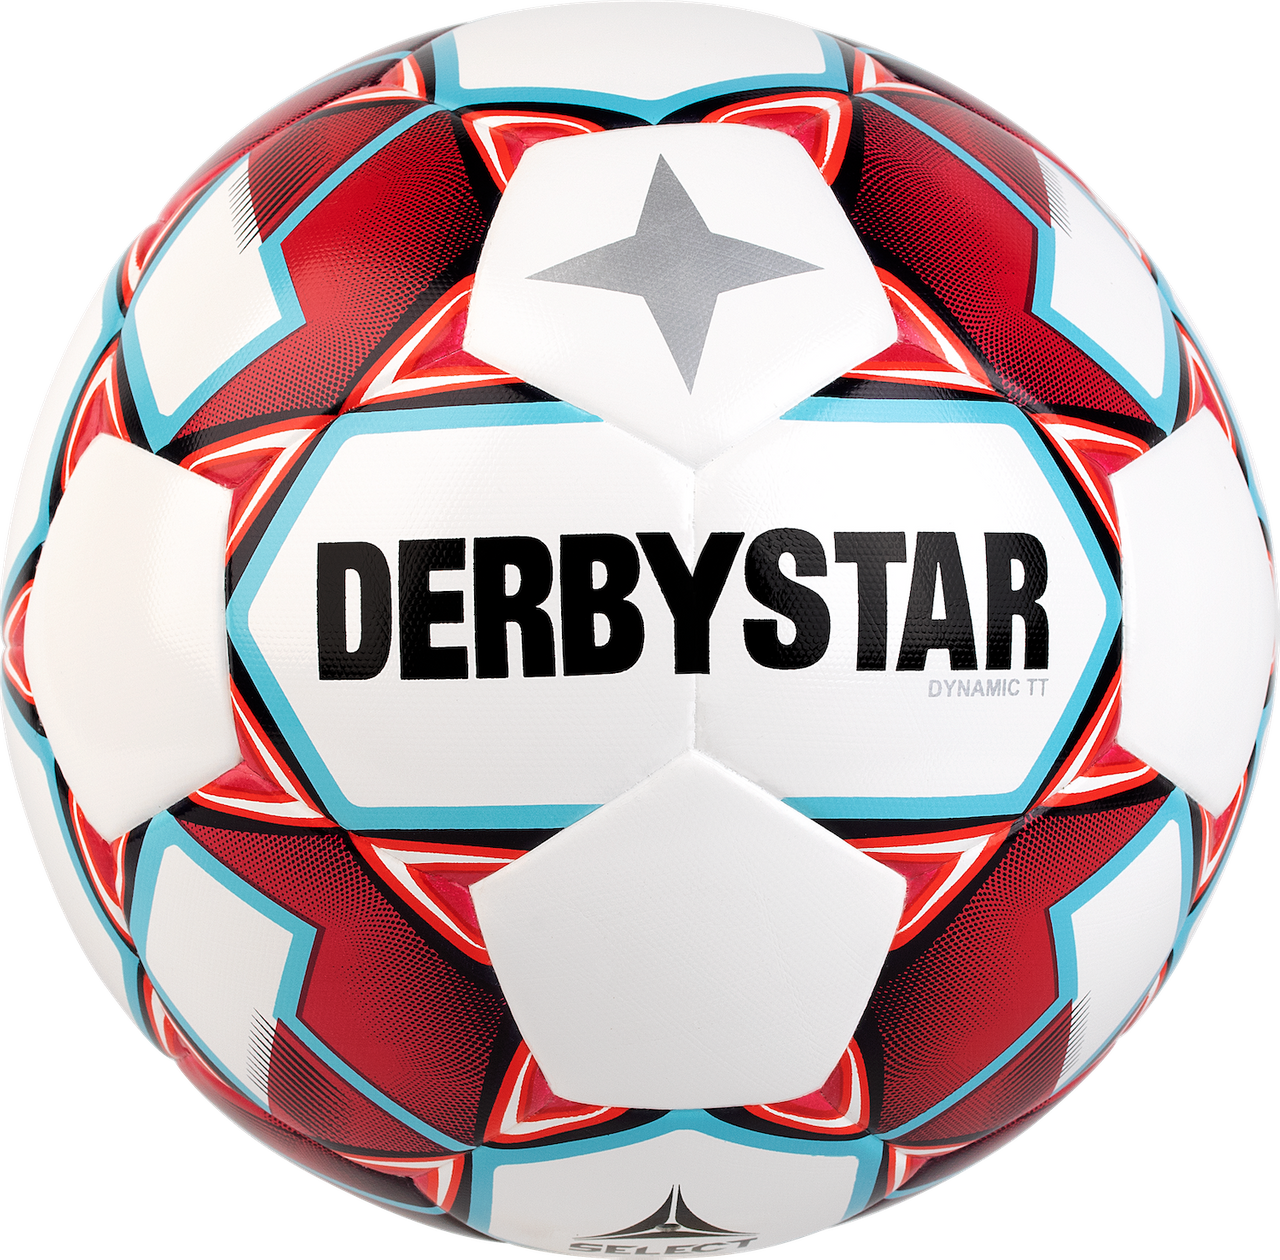 DERBYSTAR Trainingsball - DYNAMIC TT